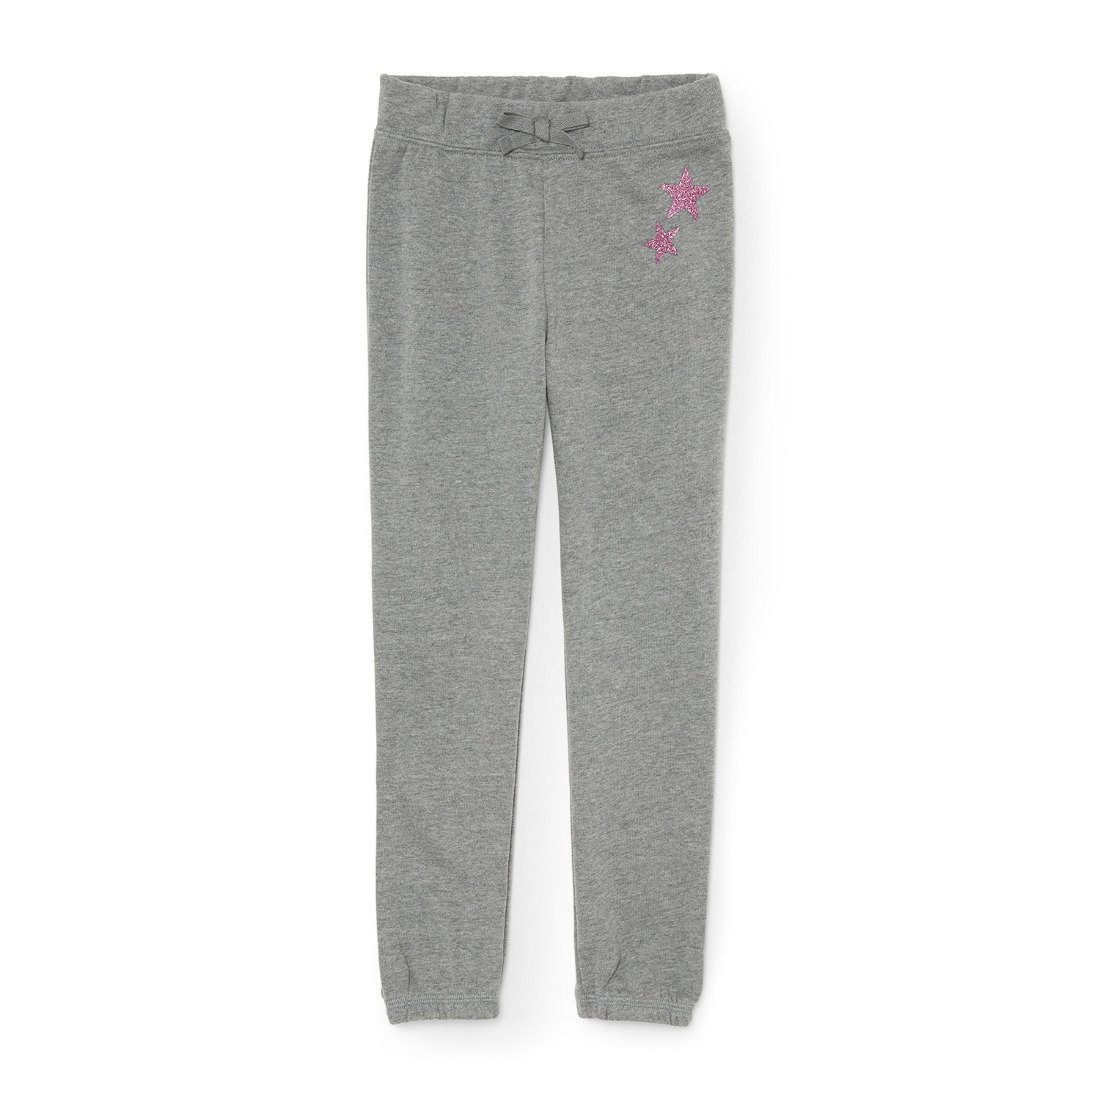 The Children's Place Big Girls' Active Pants, H/T Hound 86158, S (5/6)